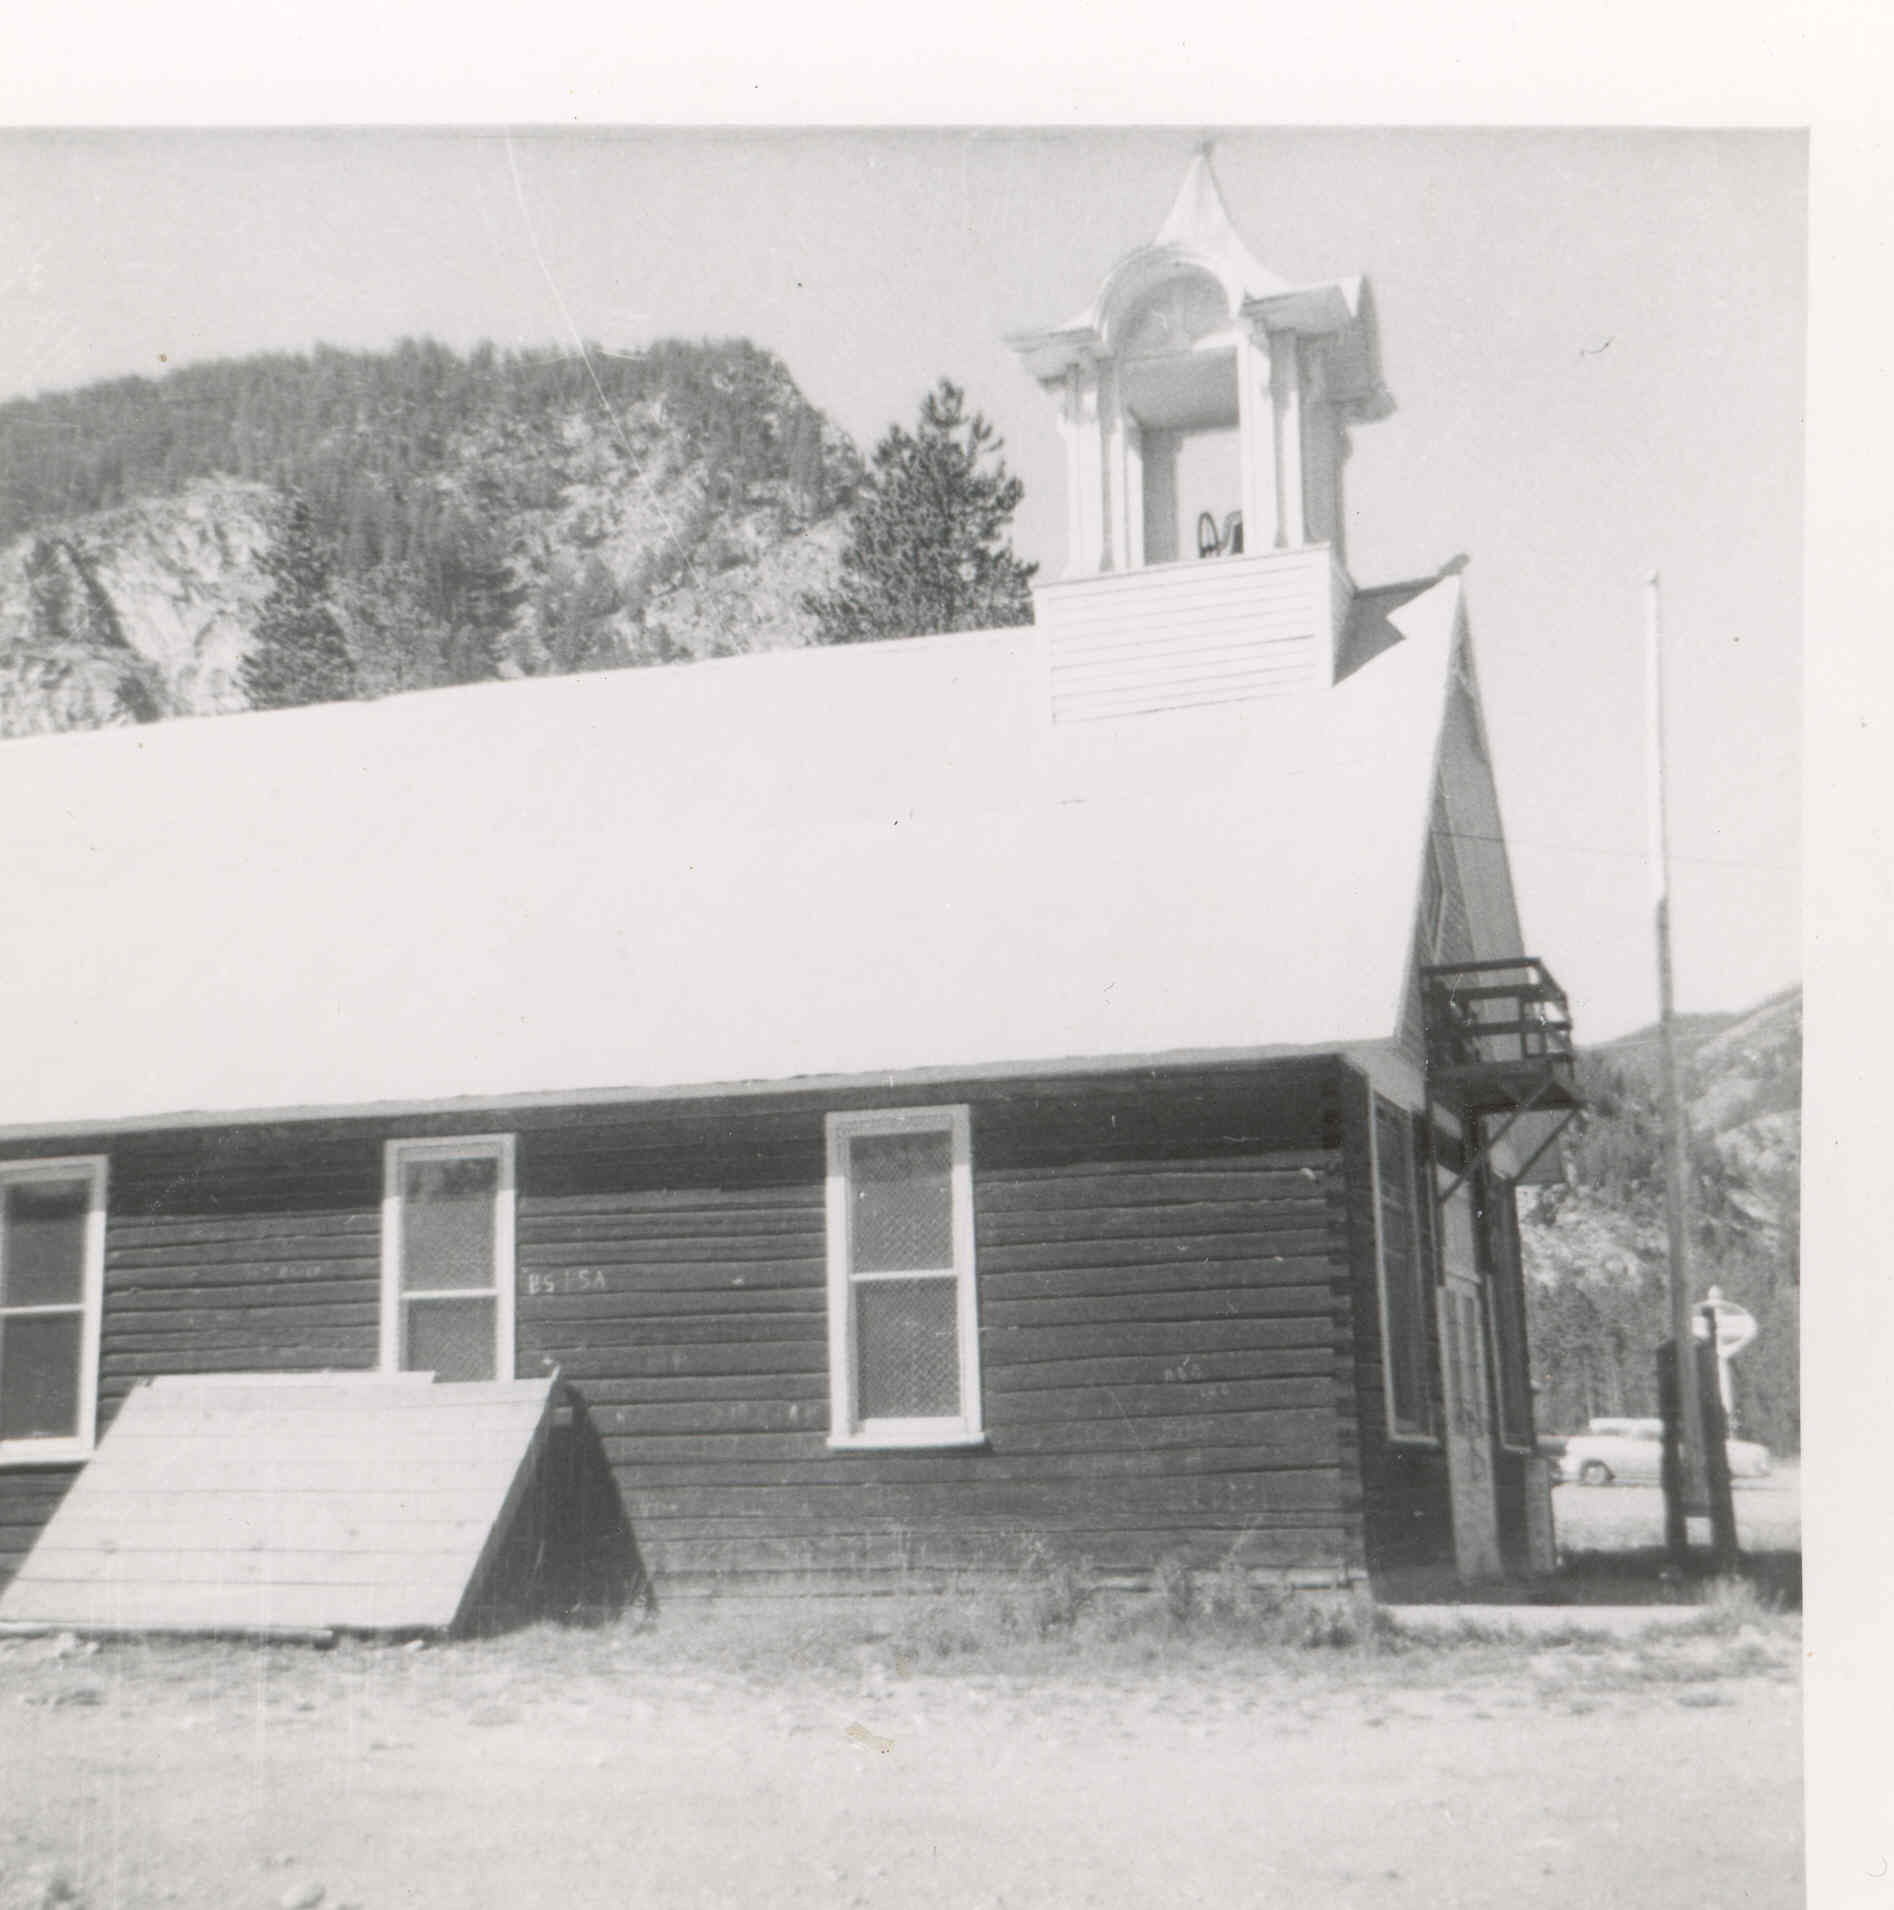 The Frisco Schoolhouse, circa 1956. Note the flag pole and the balcony above the front doors.